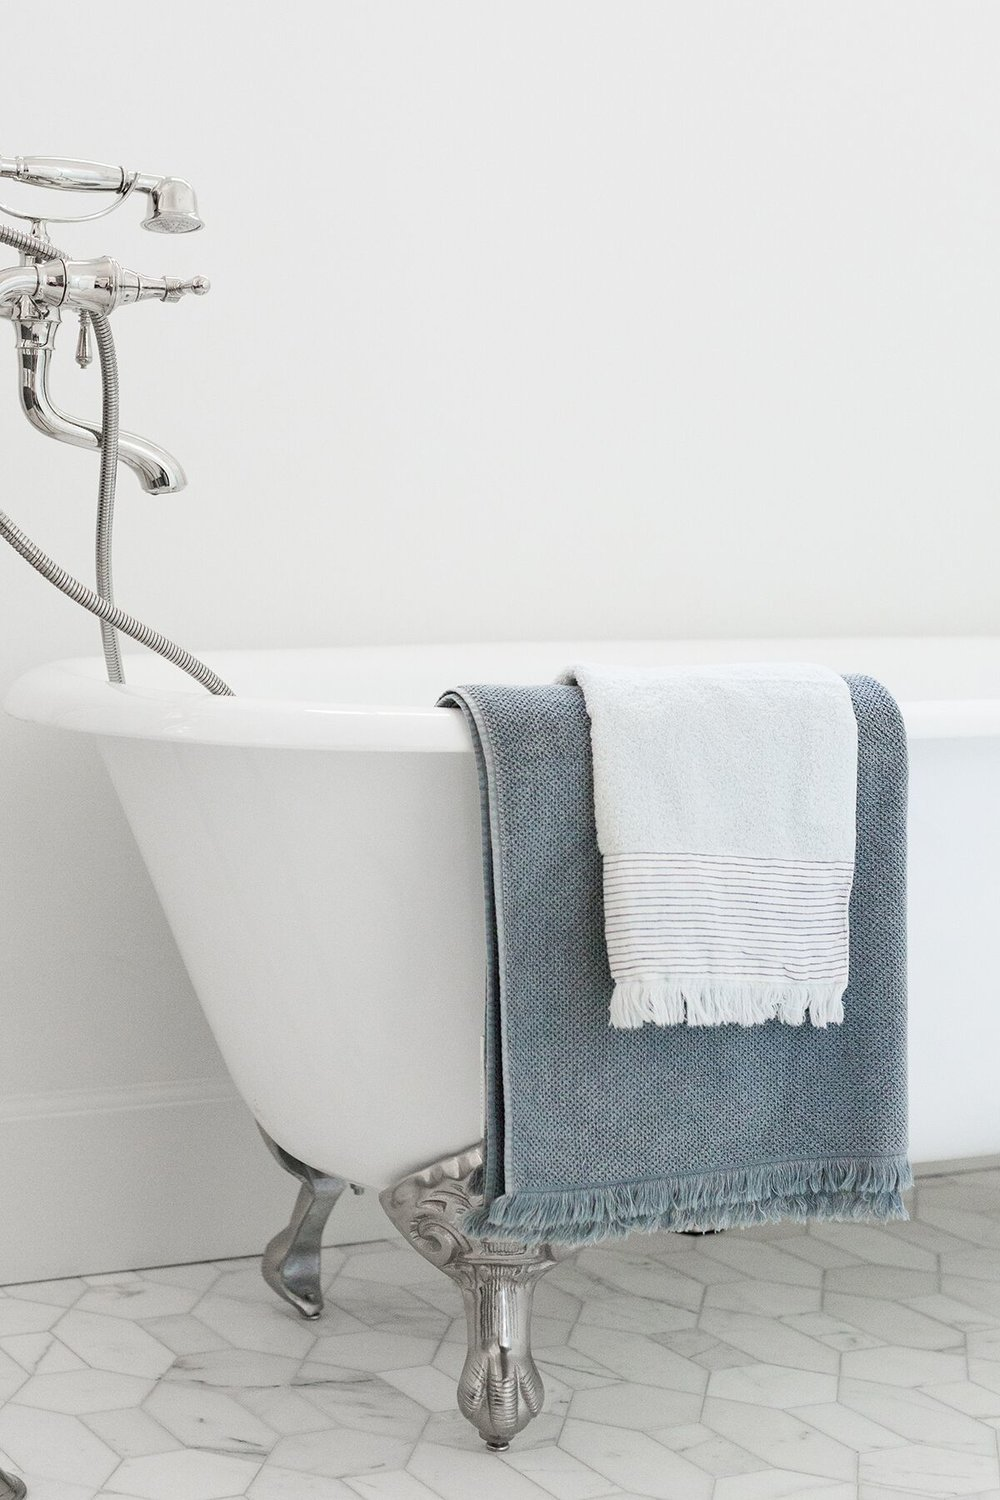 Shop  Avila Bath Towel Collection  / Shop  Rockport Towel Collection